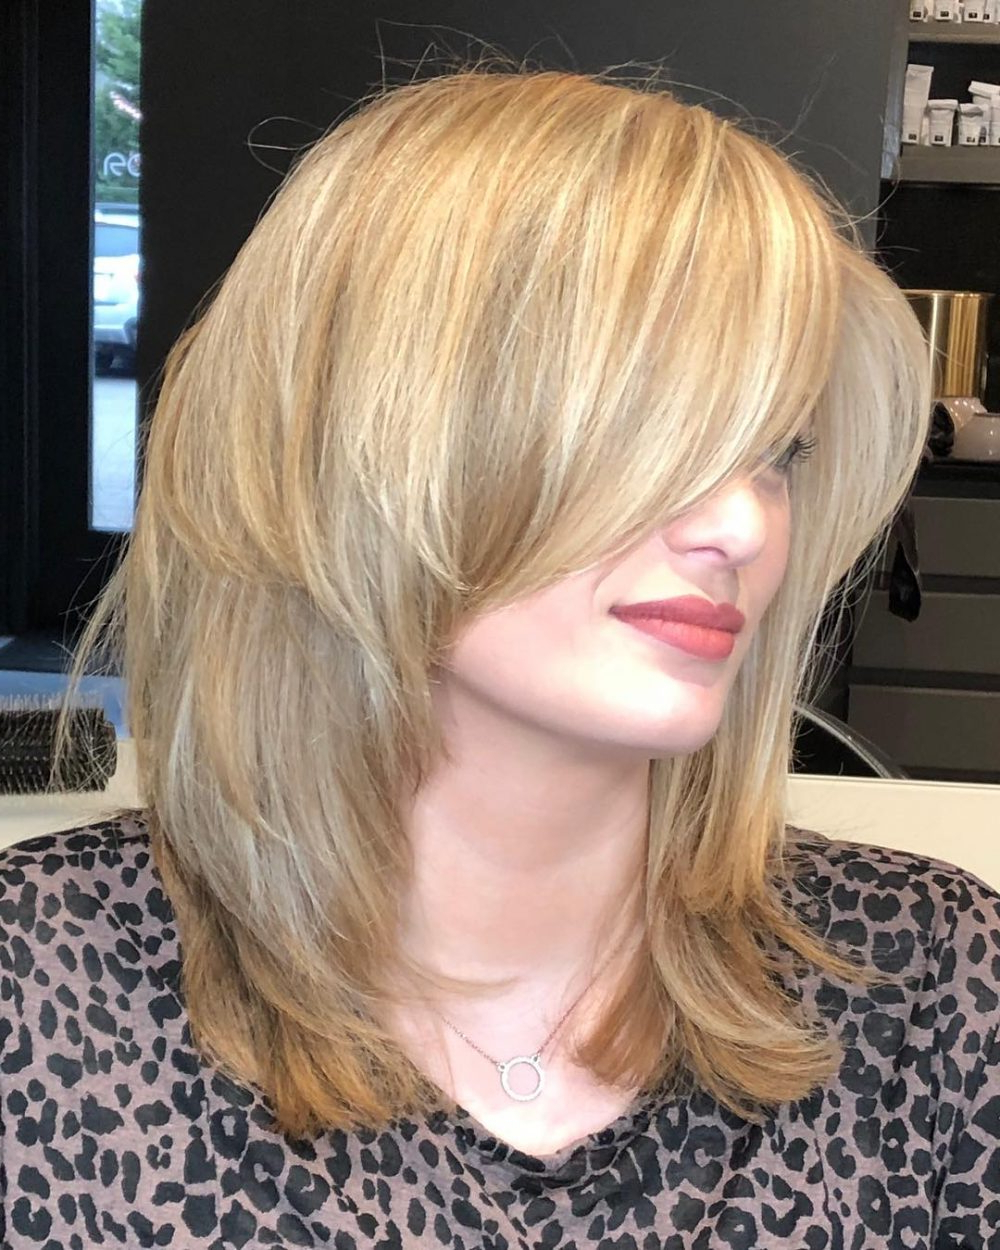 23 Perfect Medium Hairstyles For Square Faces (Popular For 2019) Within 2018 Medium Haircuts With Razored Face Framing Layers (View 3 of 20)